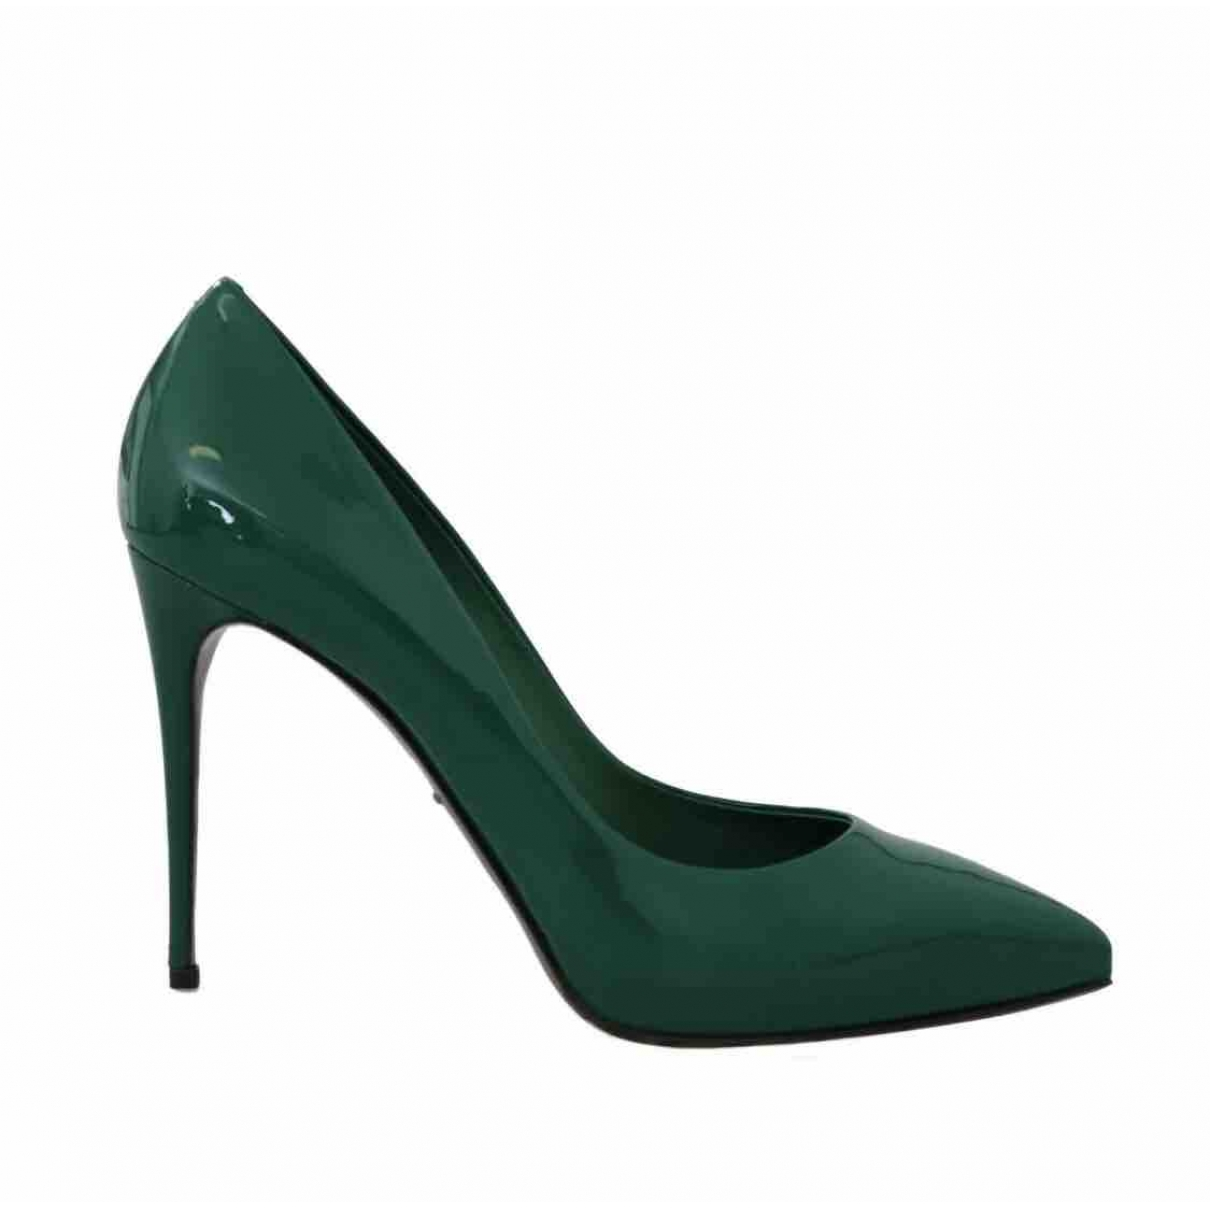 Dolce & Gabbana \N Green Patent leather Heels for Women 39 EU